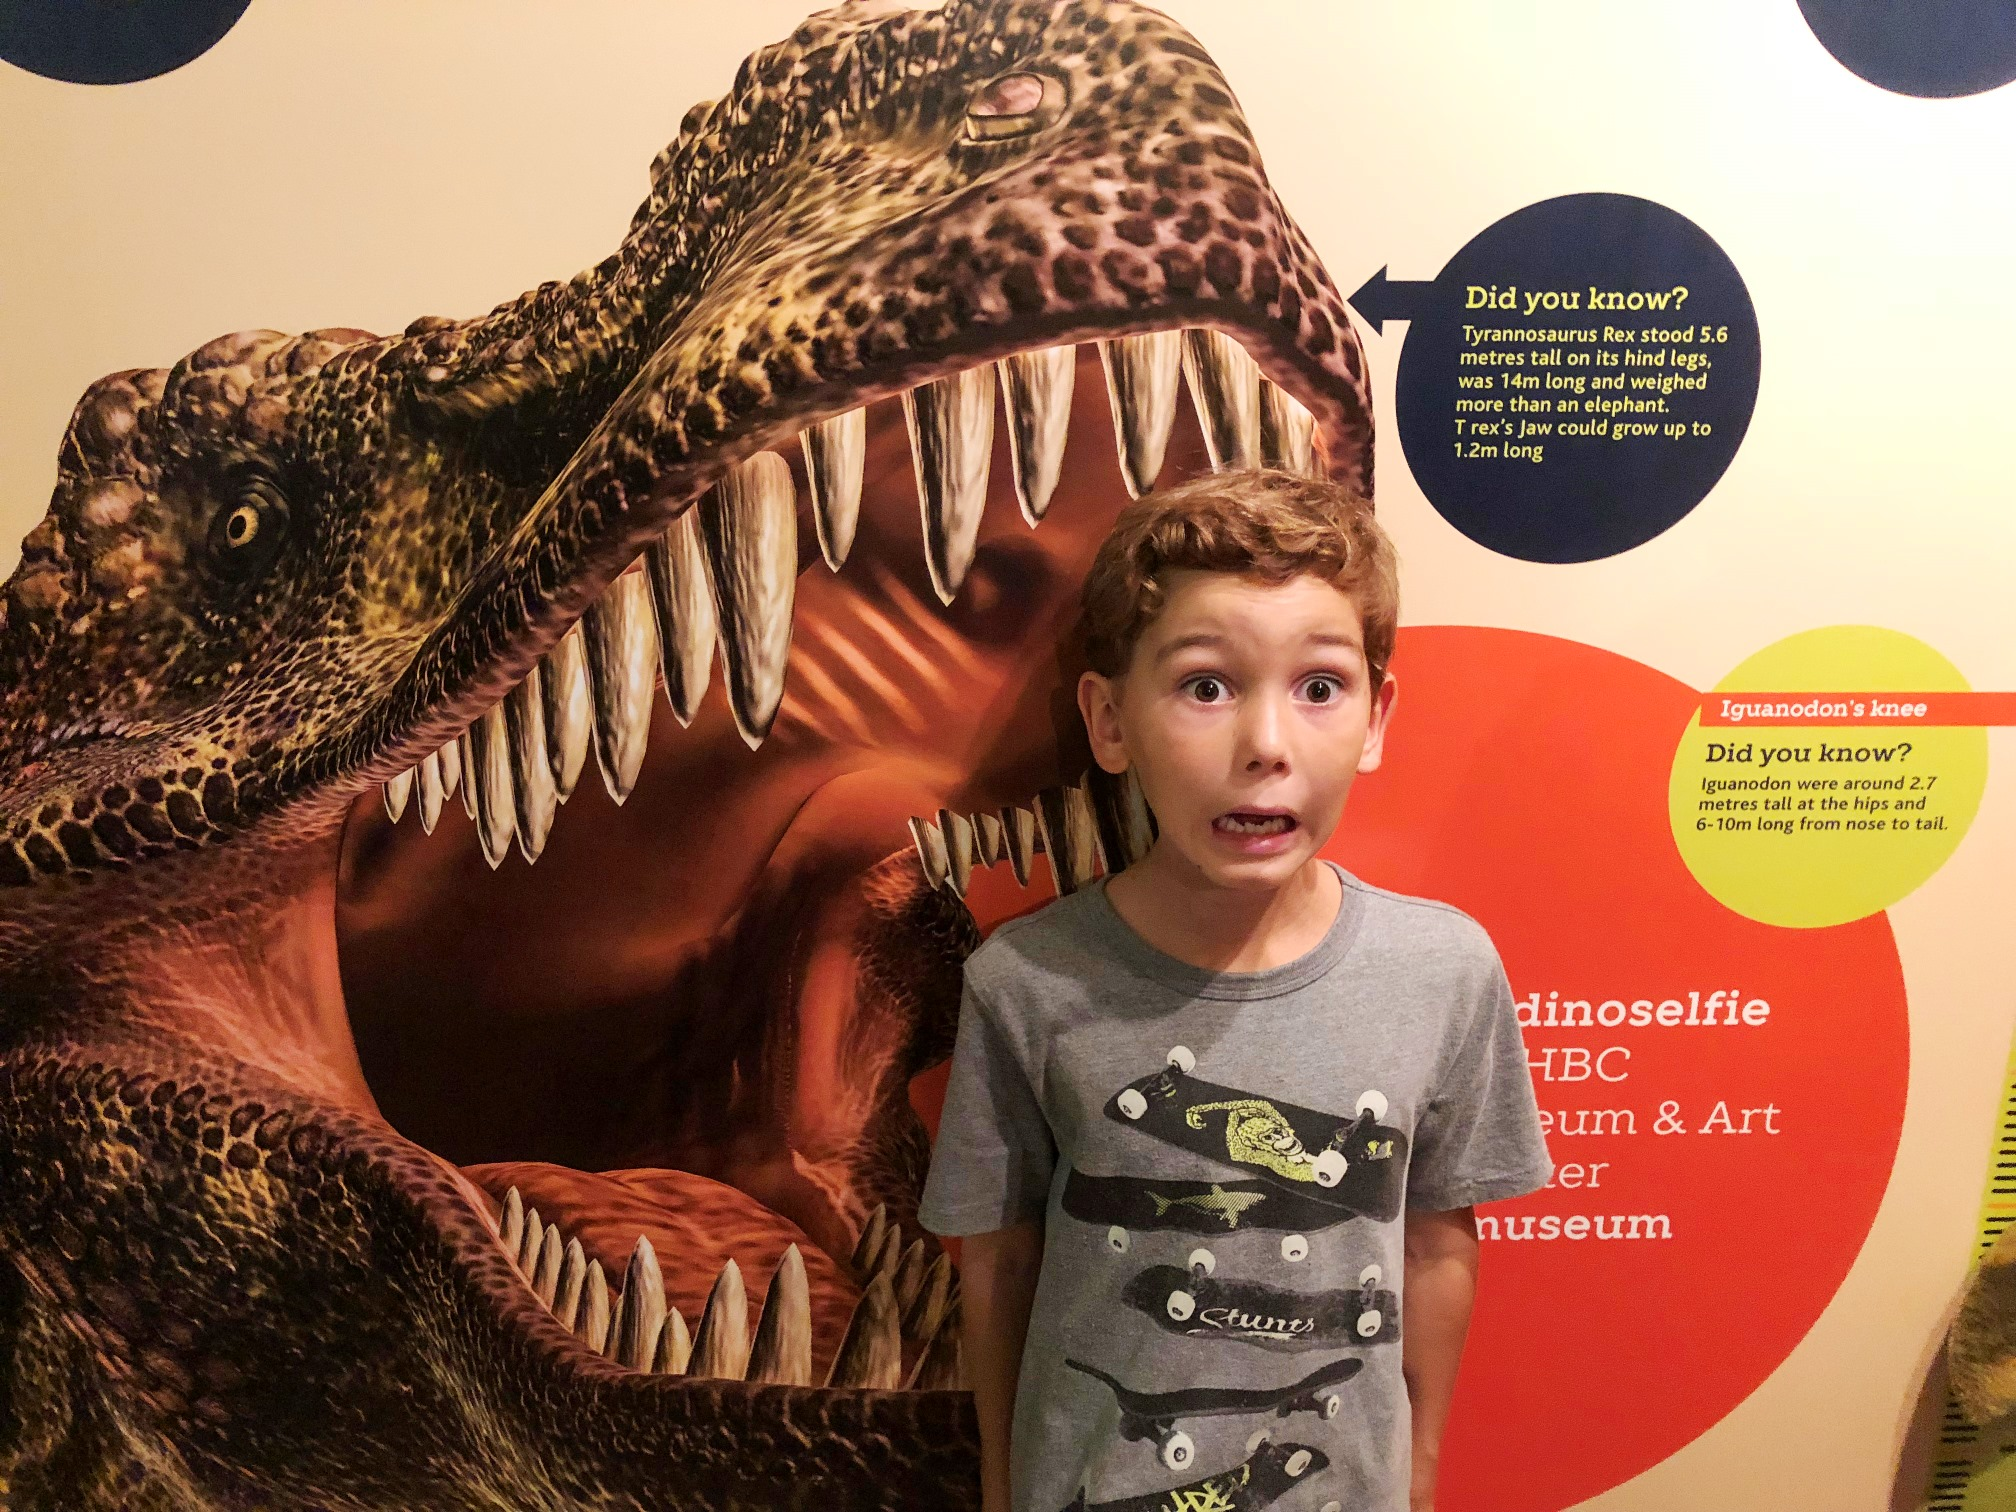 Dino-tastic day for families at Hastings Museum & Art Gallery